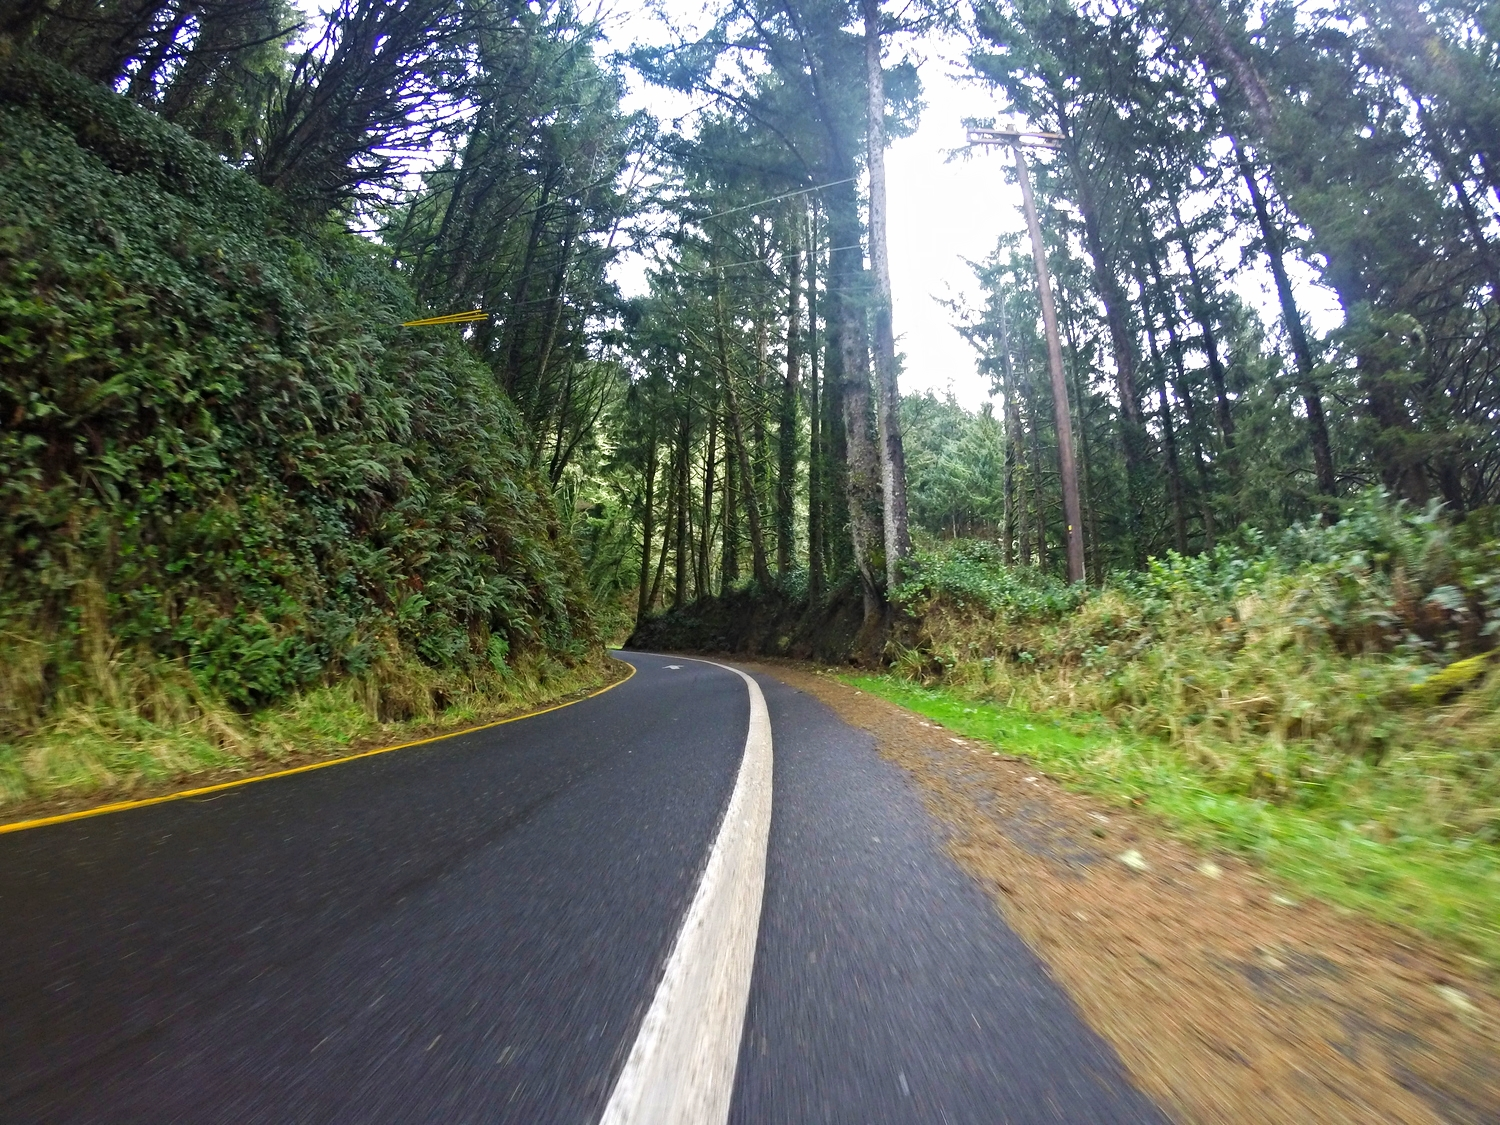 Just out of Depoe Bay there are bike route signs that take you off the 101 to this little gem of a road!